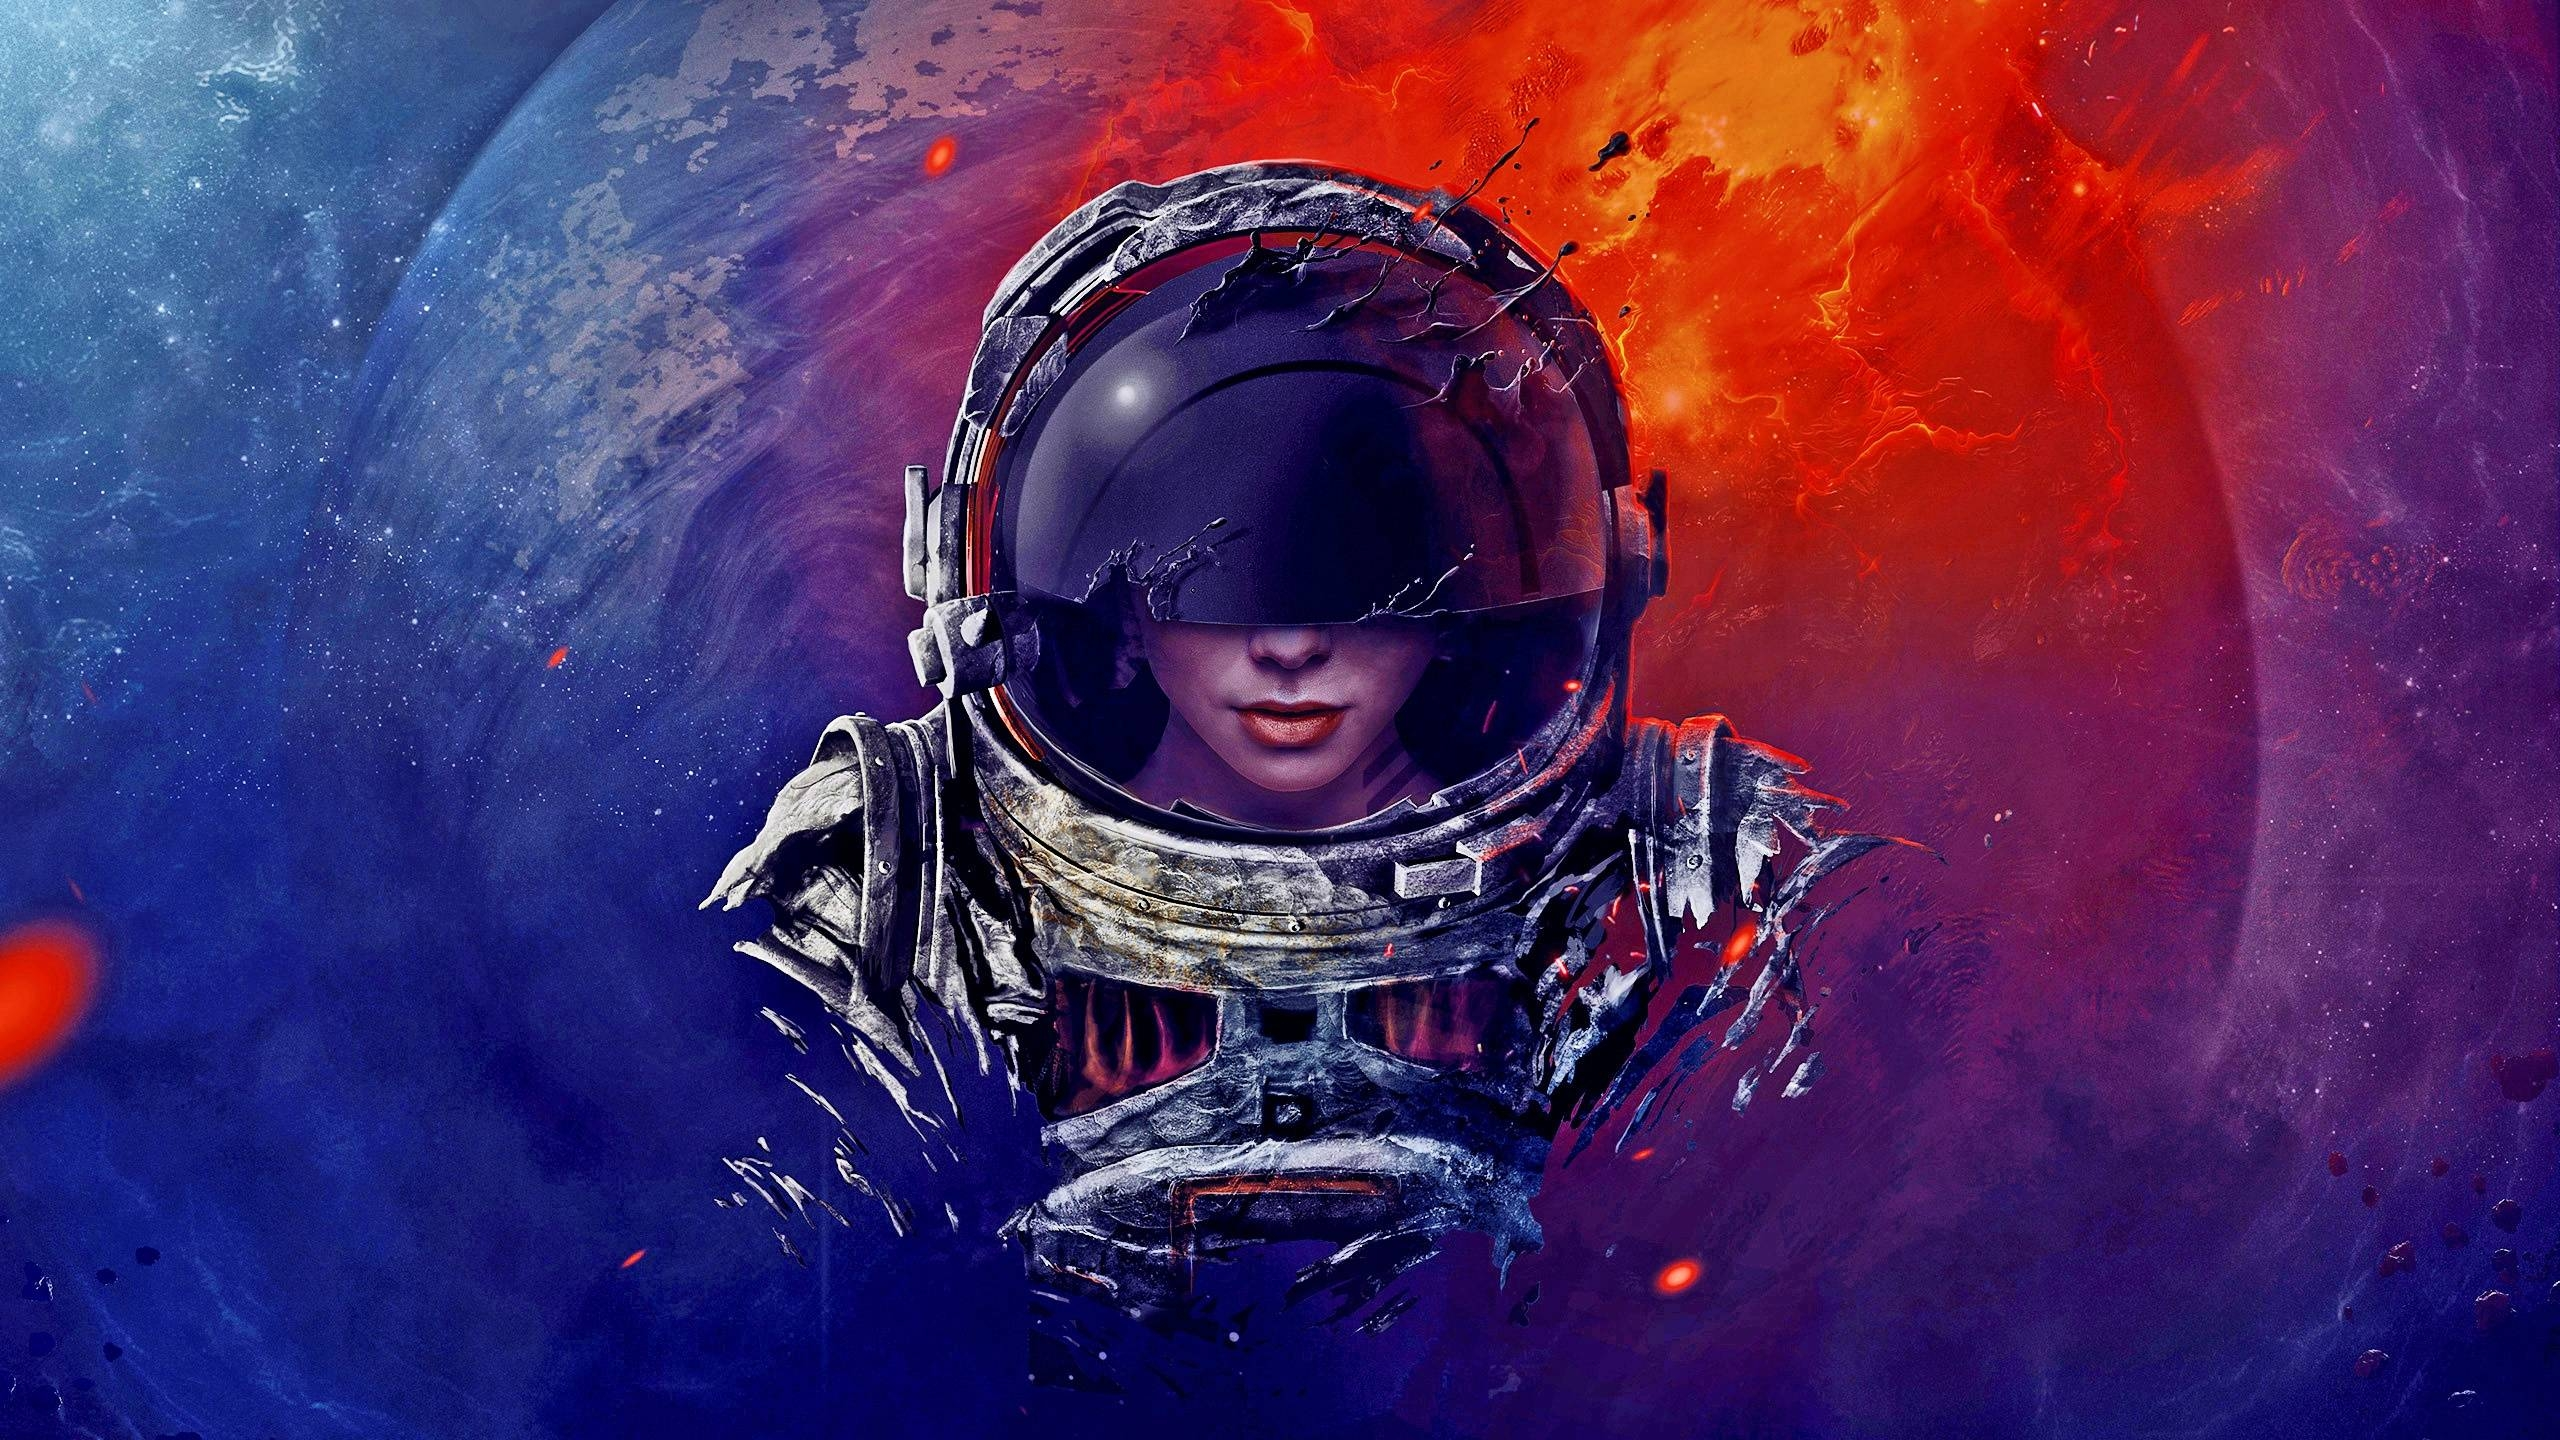 206 Astronaut Hd Wallpapers | Backgrounds – Wallpaper Abyss For Most Popular Astronaut 3D Wall Art (Gallery 12 of 20)